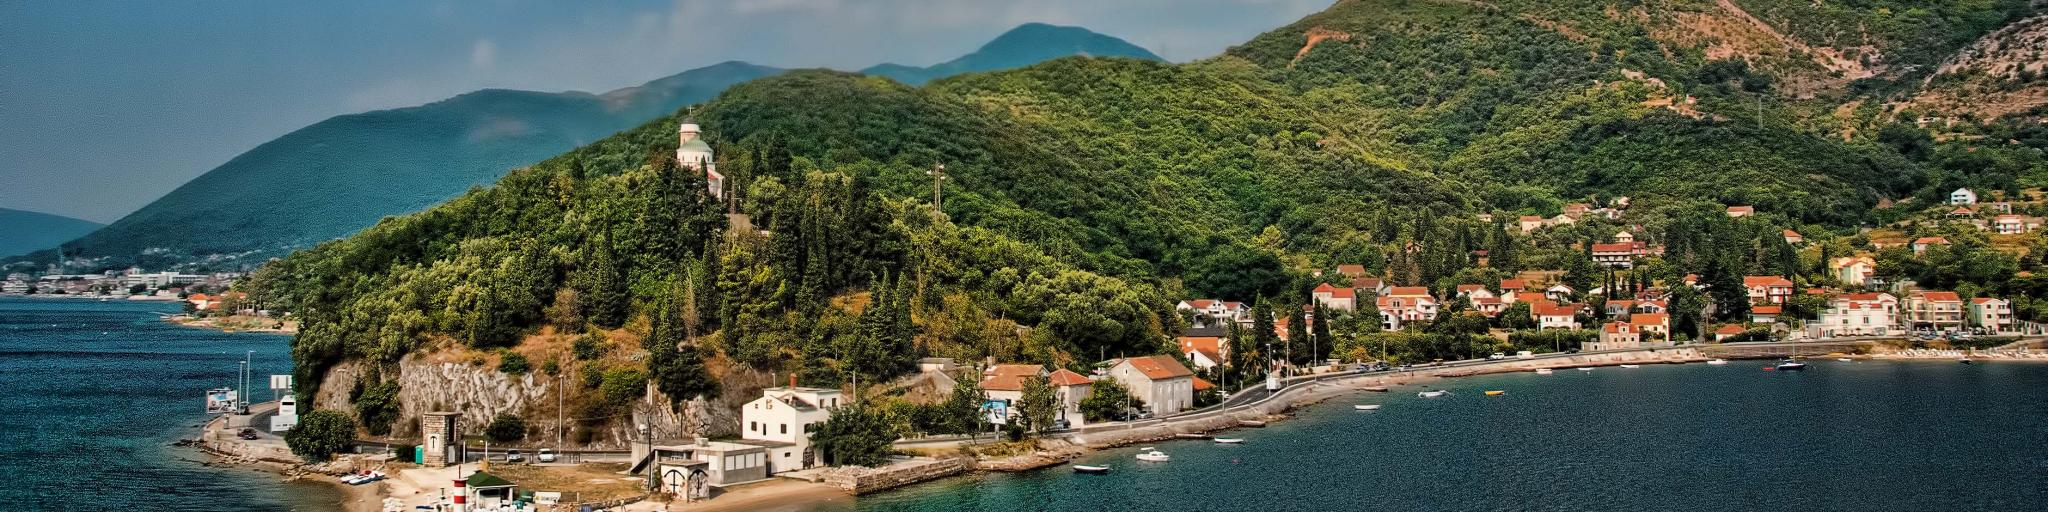 Lush green forests and turquoise water along the coastline of Montenegro